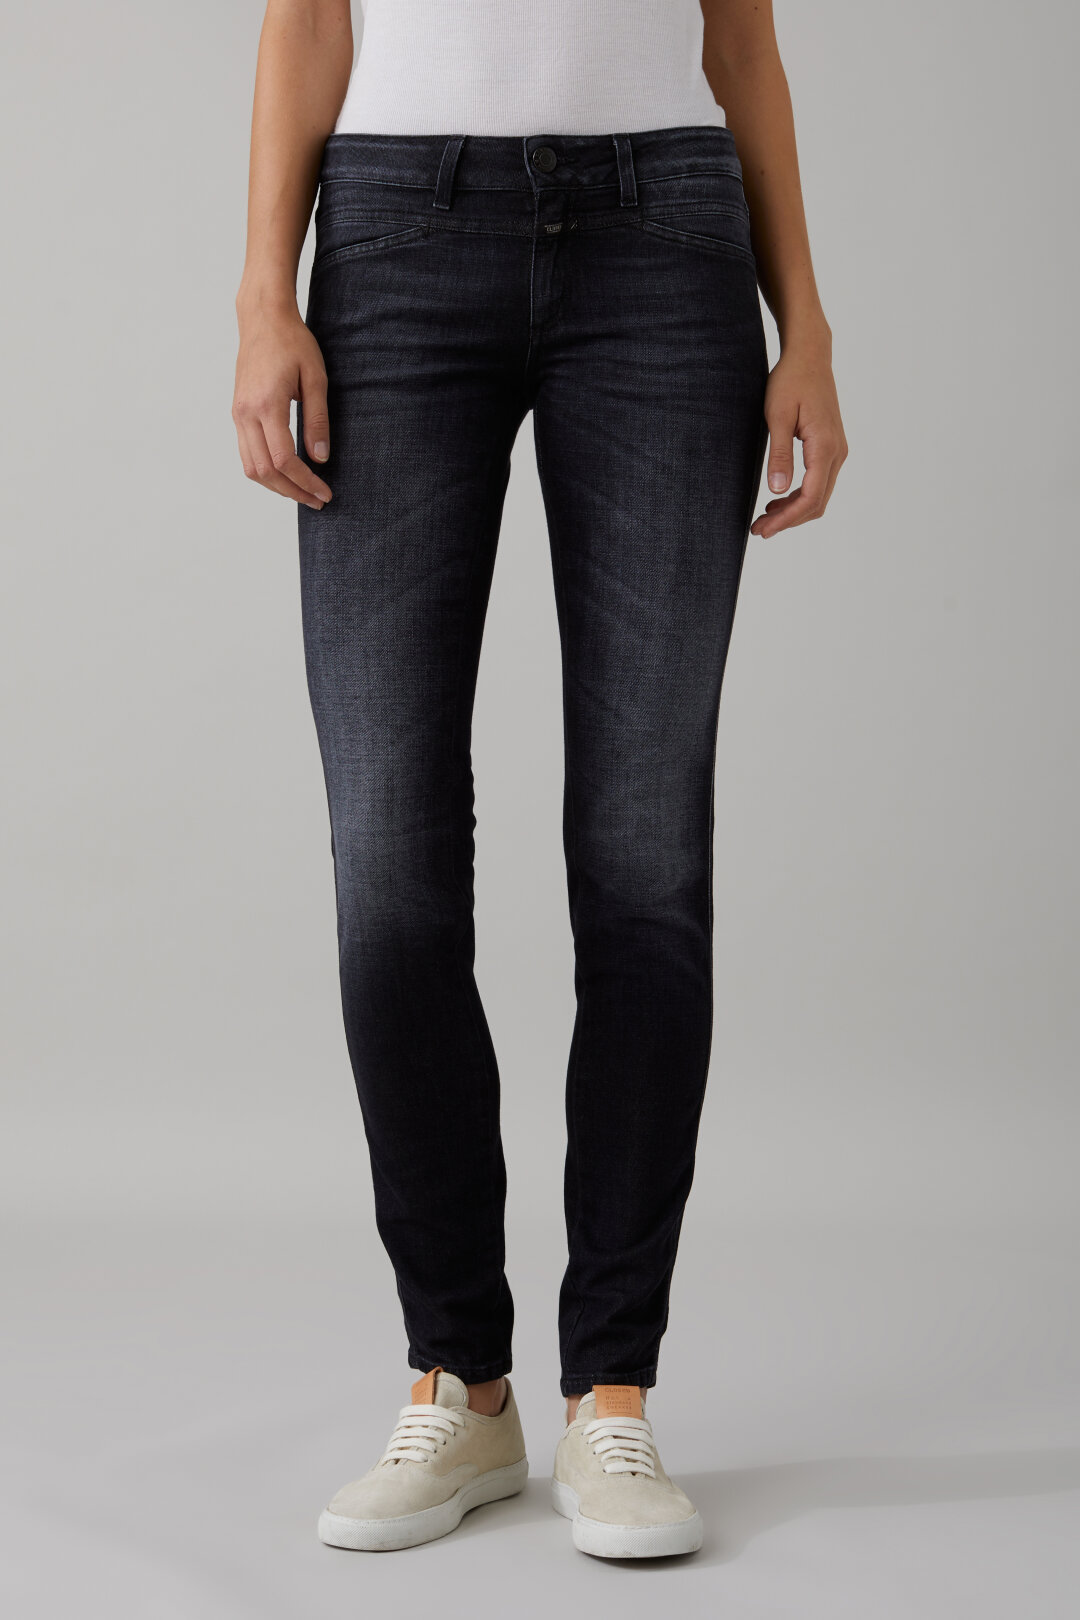 Pedal Star Left Hand Black Stretch Denim